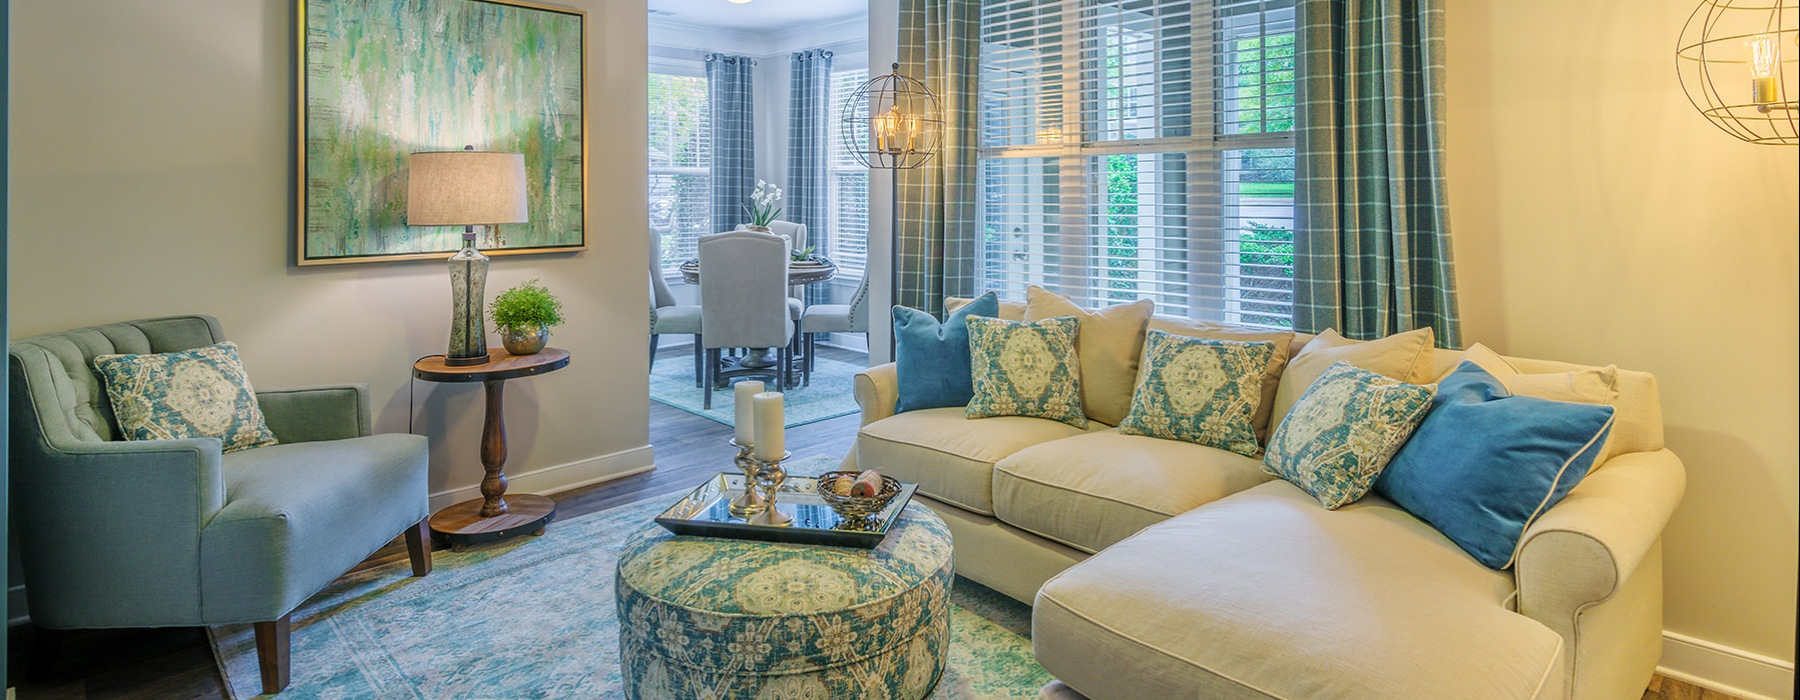 Olmsted Available One Two Or Three Bedroom Apartments In Arden Nc Reserve At Biltmore Park